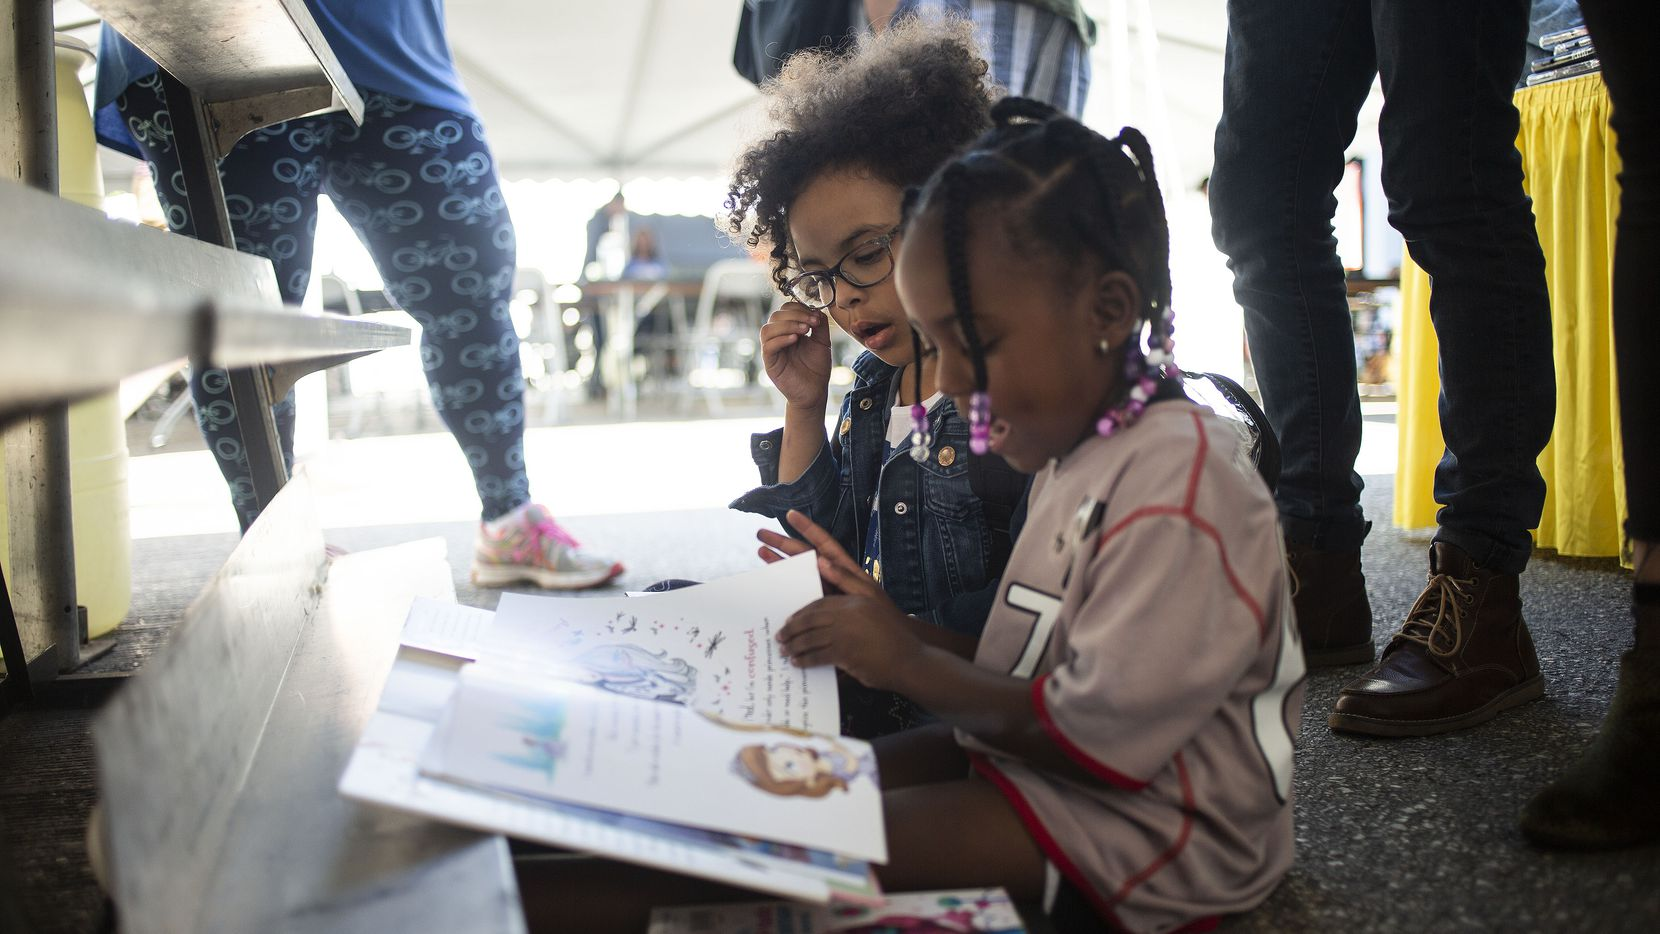 Violet Lewis, 4, left, and her friend Janel Smith, 4, take a moment to flip through a children's book at the Texas Book Festival on Oct. 27, 2018 in Austin, Texas.